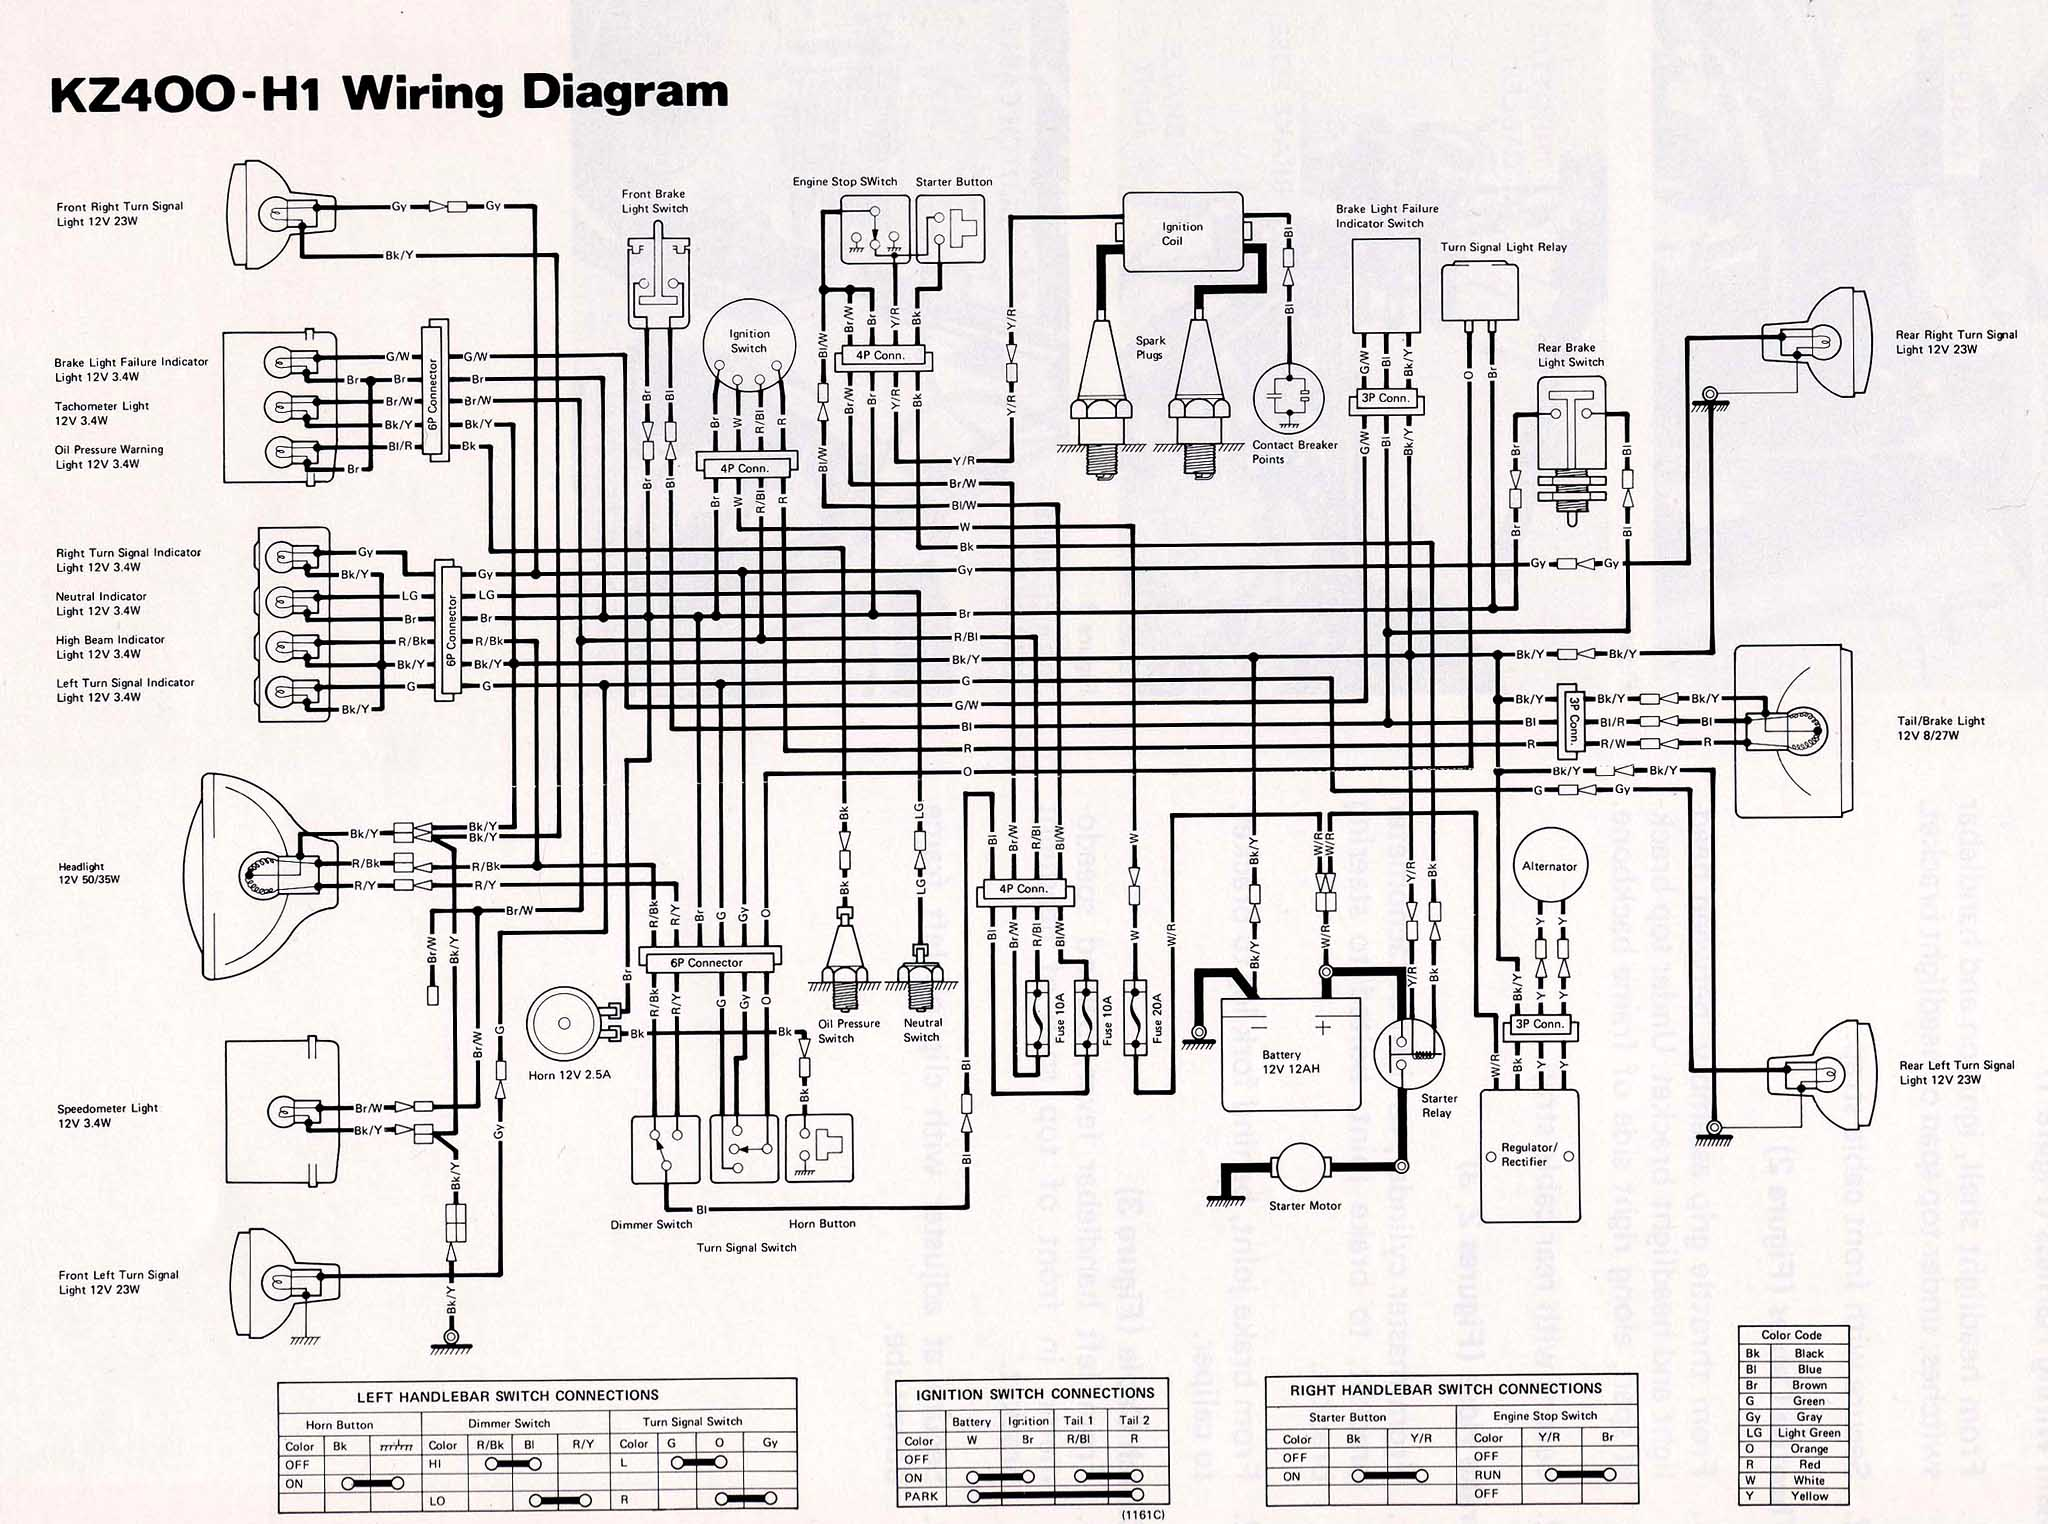 kz400 wiring diagram circuits symbols diagrams u2022 rh amdrums co uk